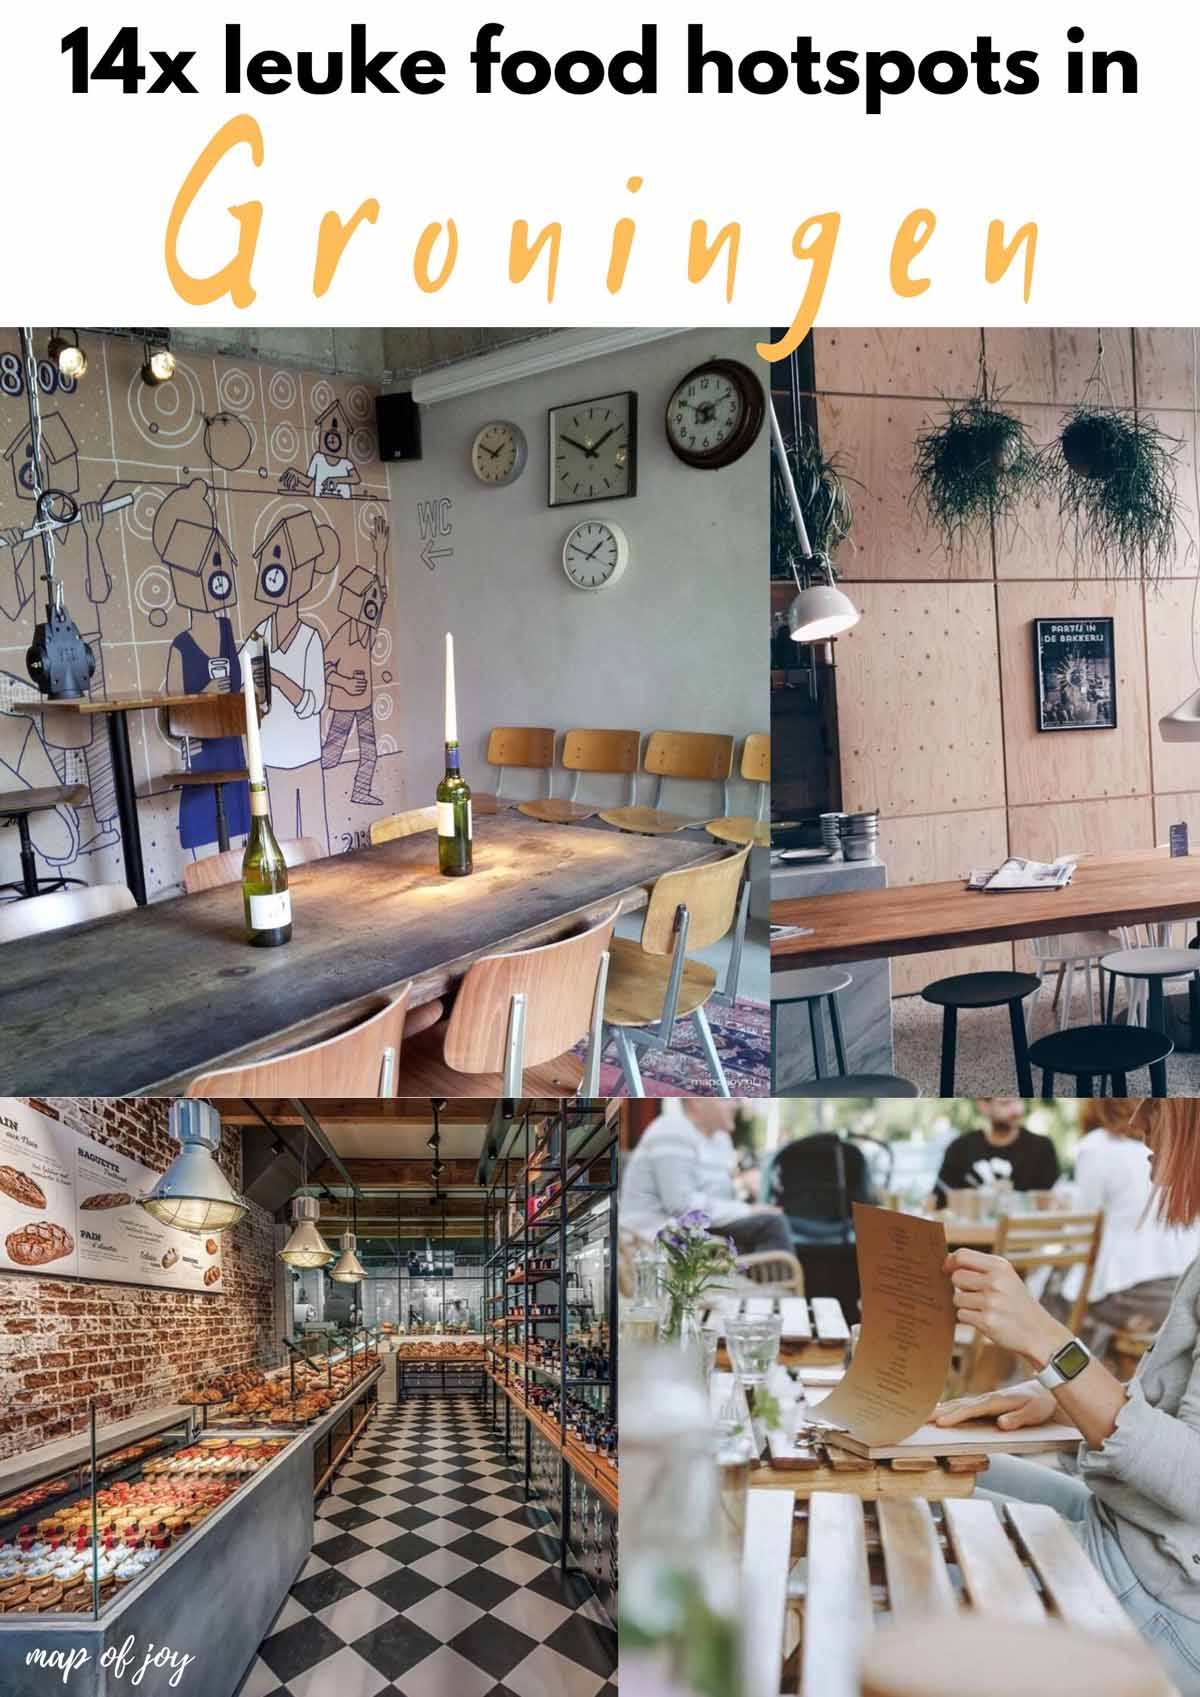 14x de leukste food hotspots in Groningen - Map of Joy